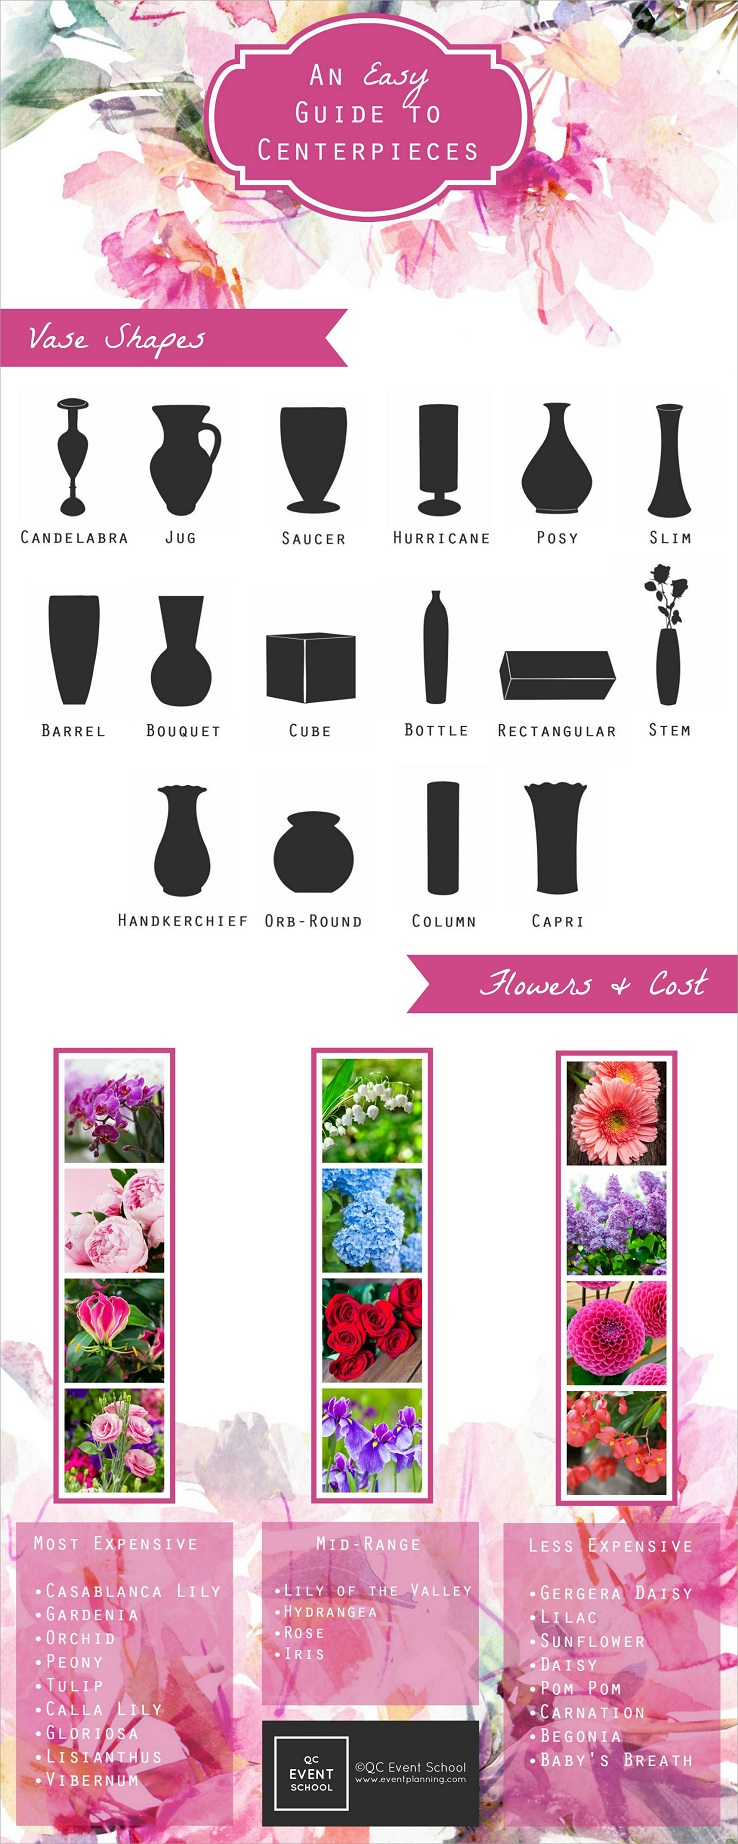 Centerpiece guide